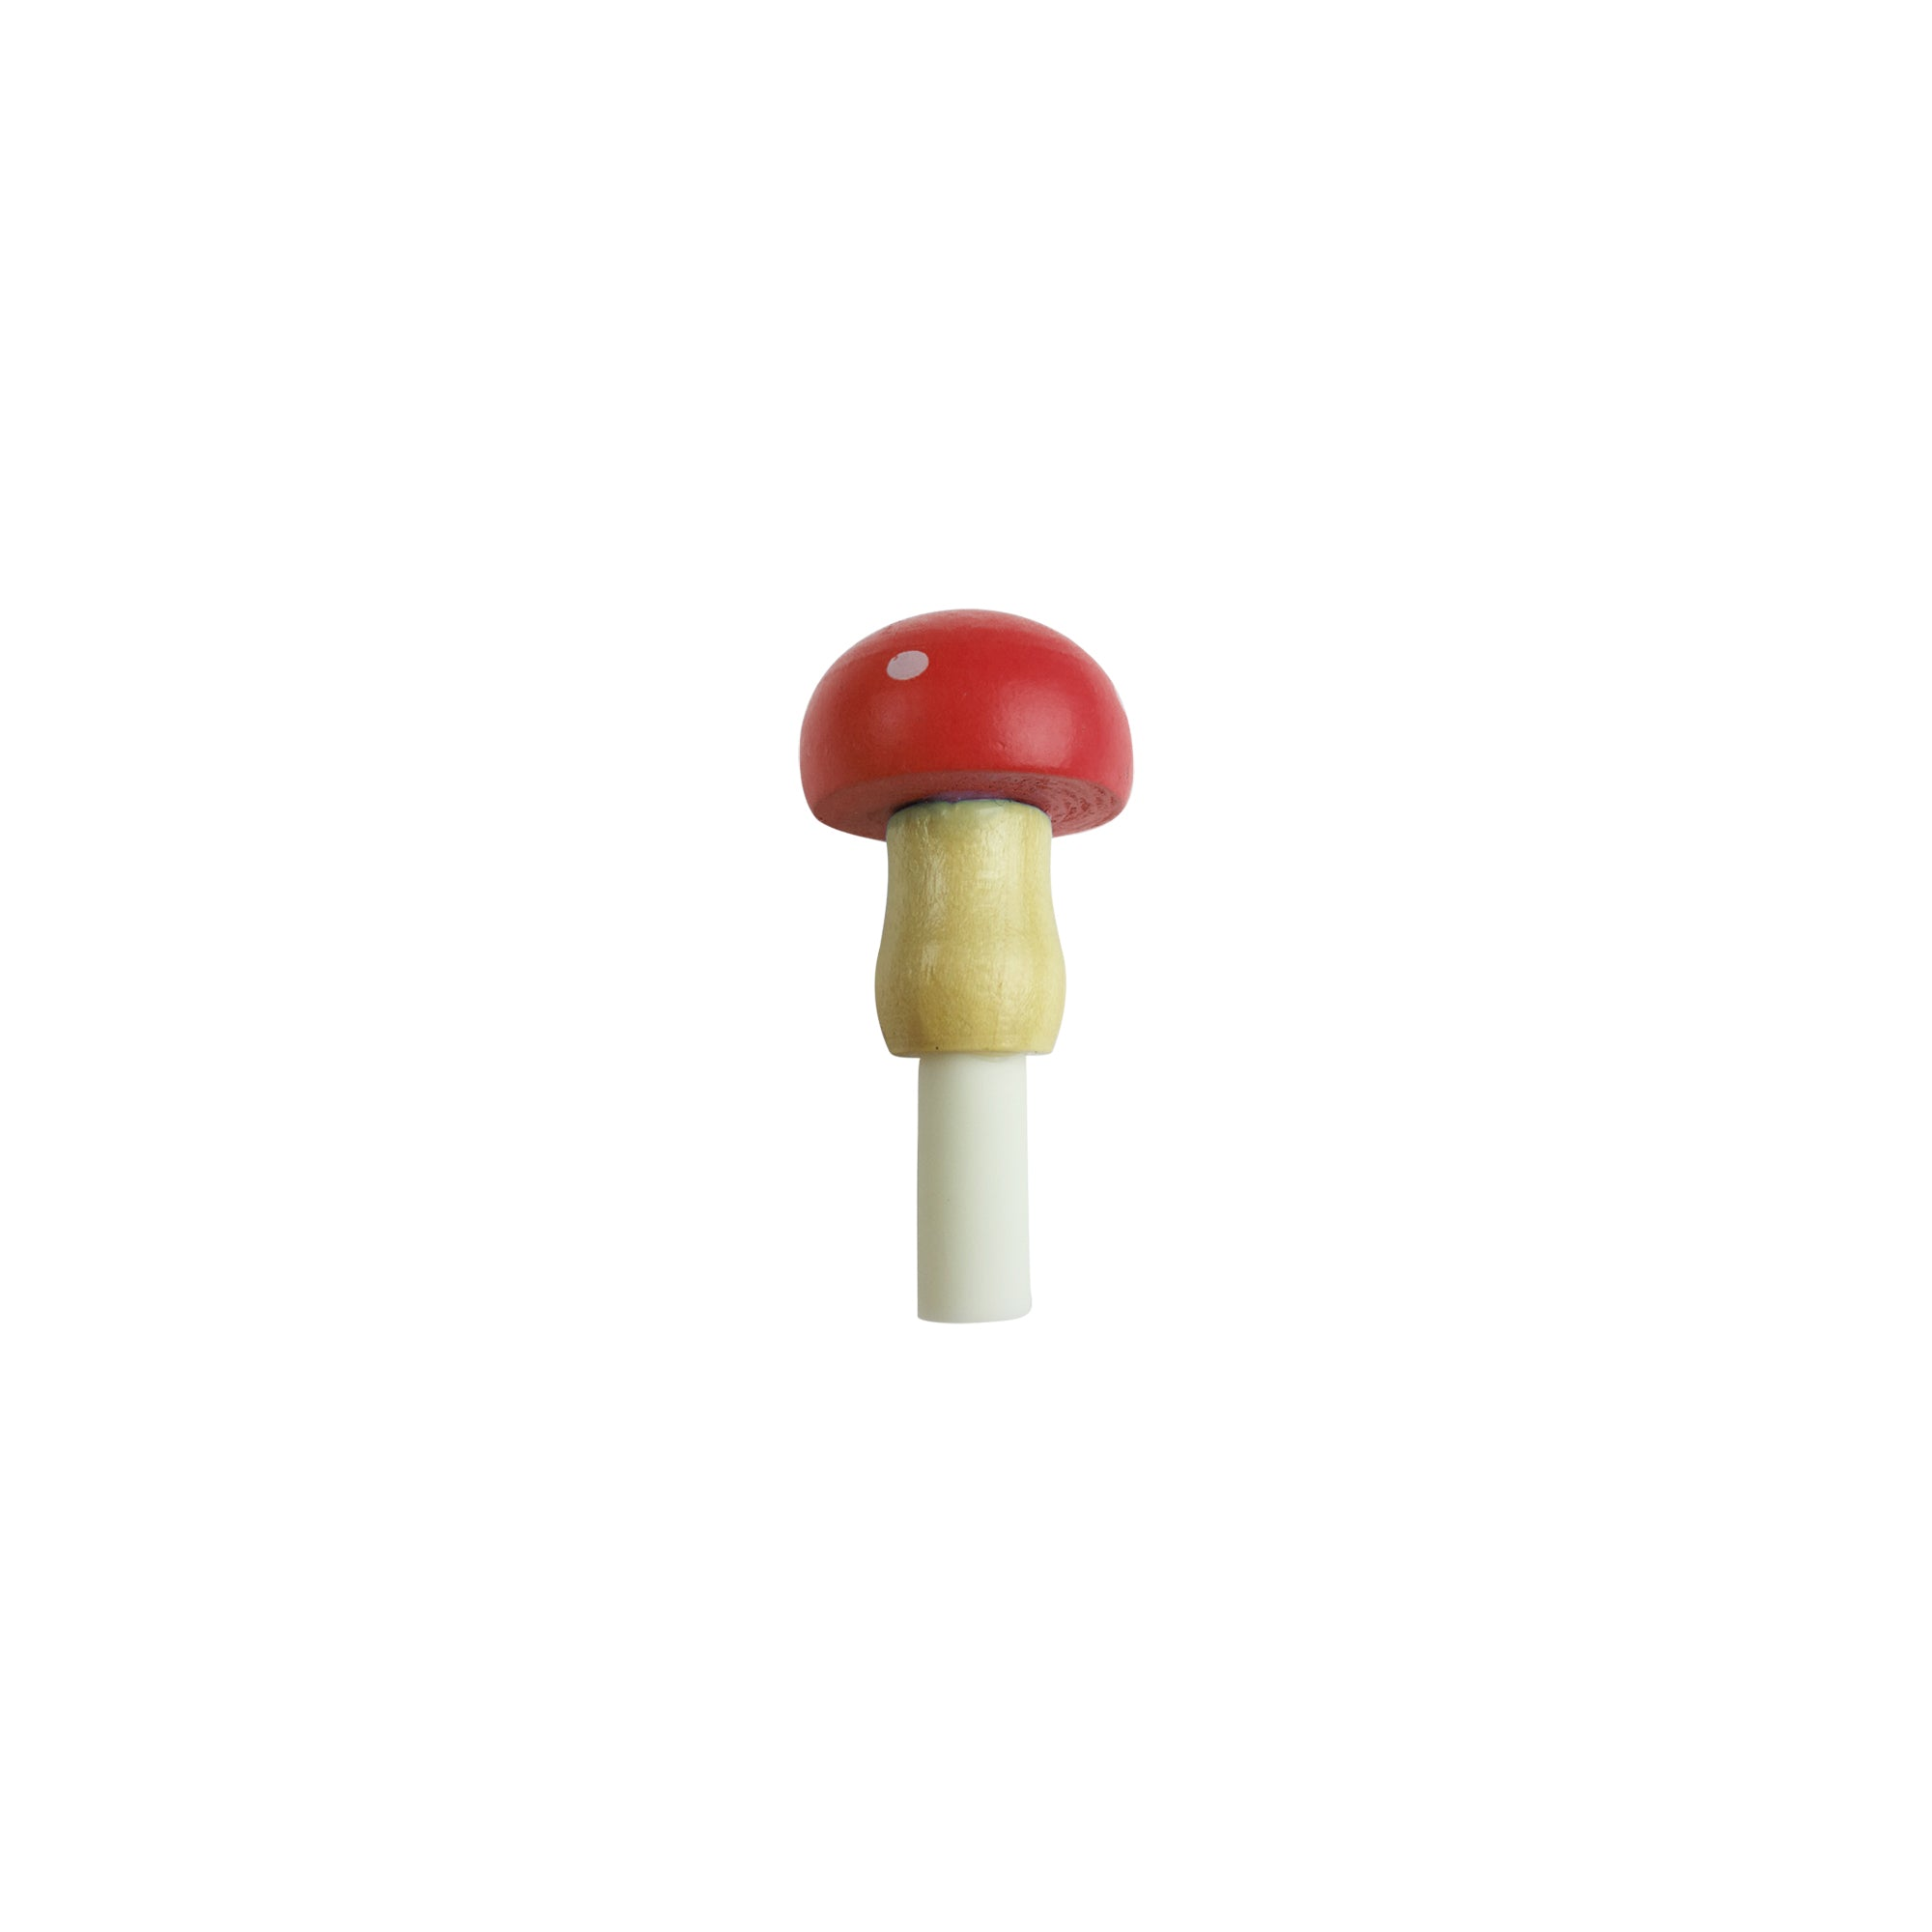 Black Ink Gel Pen Round Mushroom Red